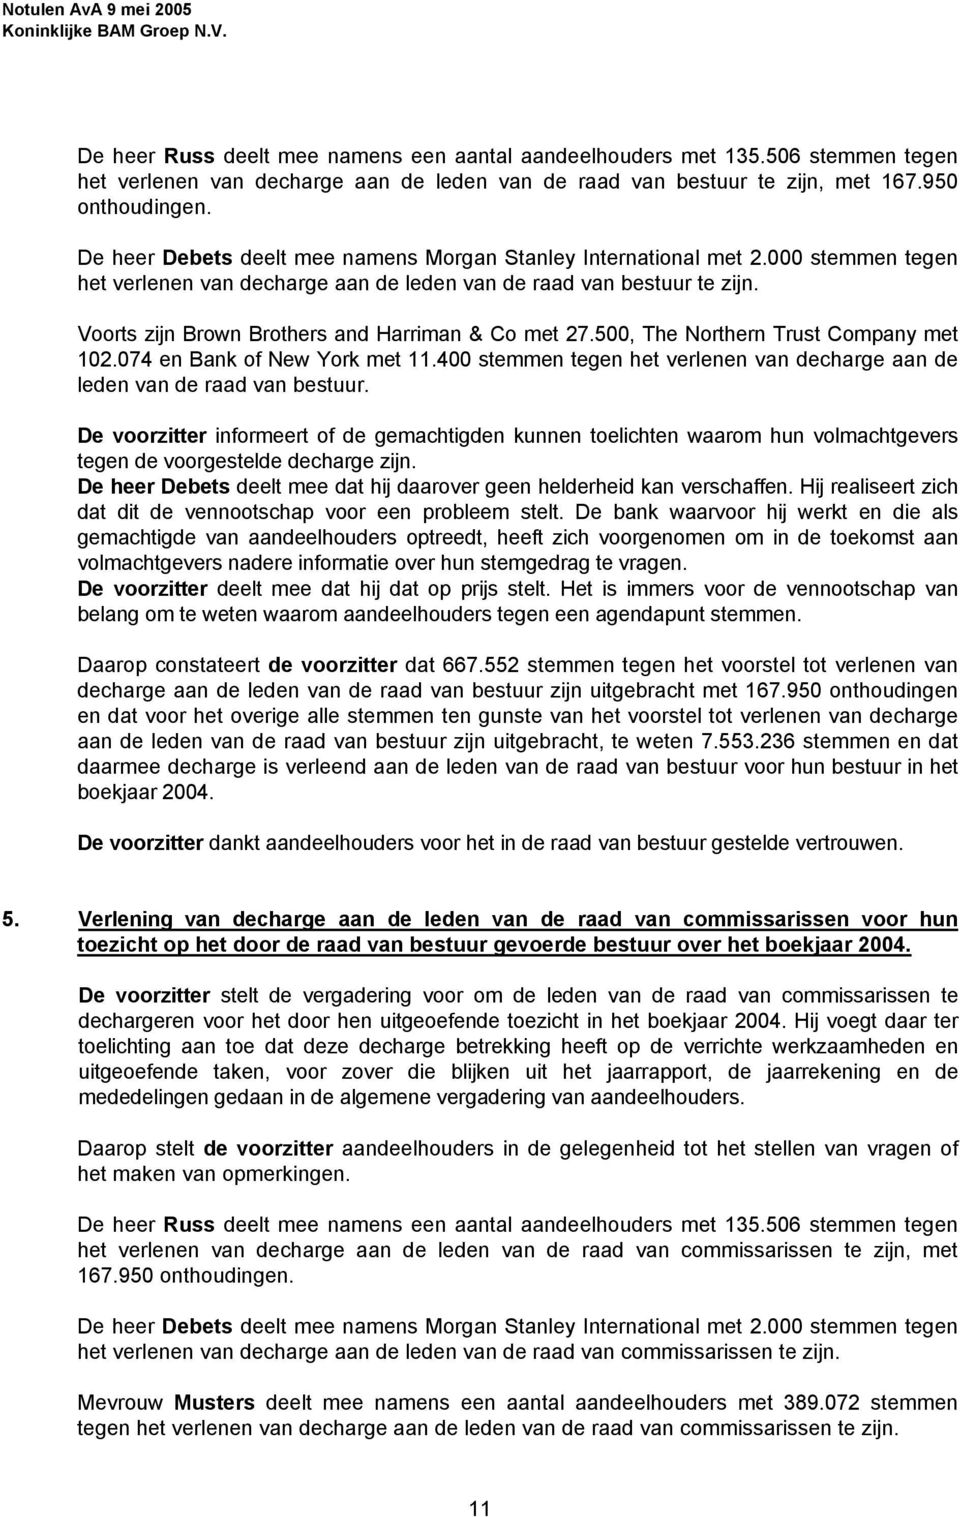 Voorts zijn Brown Brothers and Harriman & Co met 27.500, The Northern Trust Company met 102.074 en Bank of New York met 11.